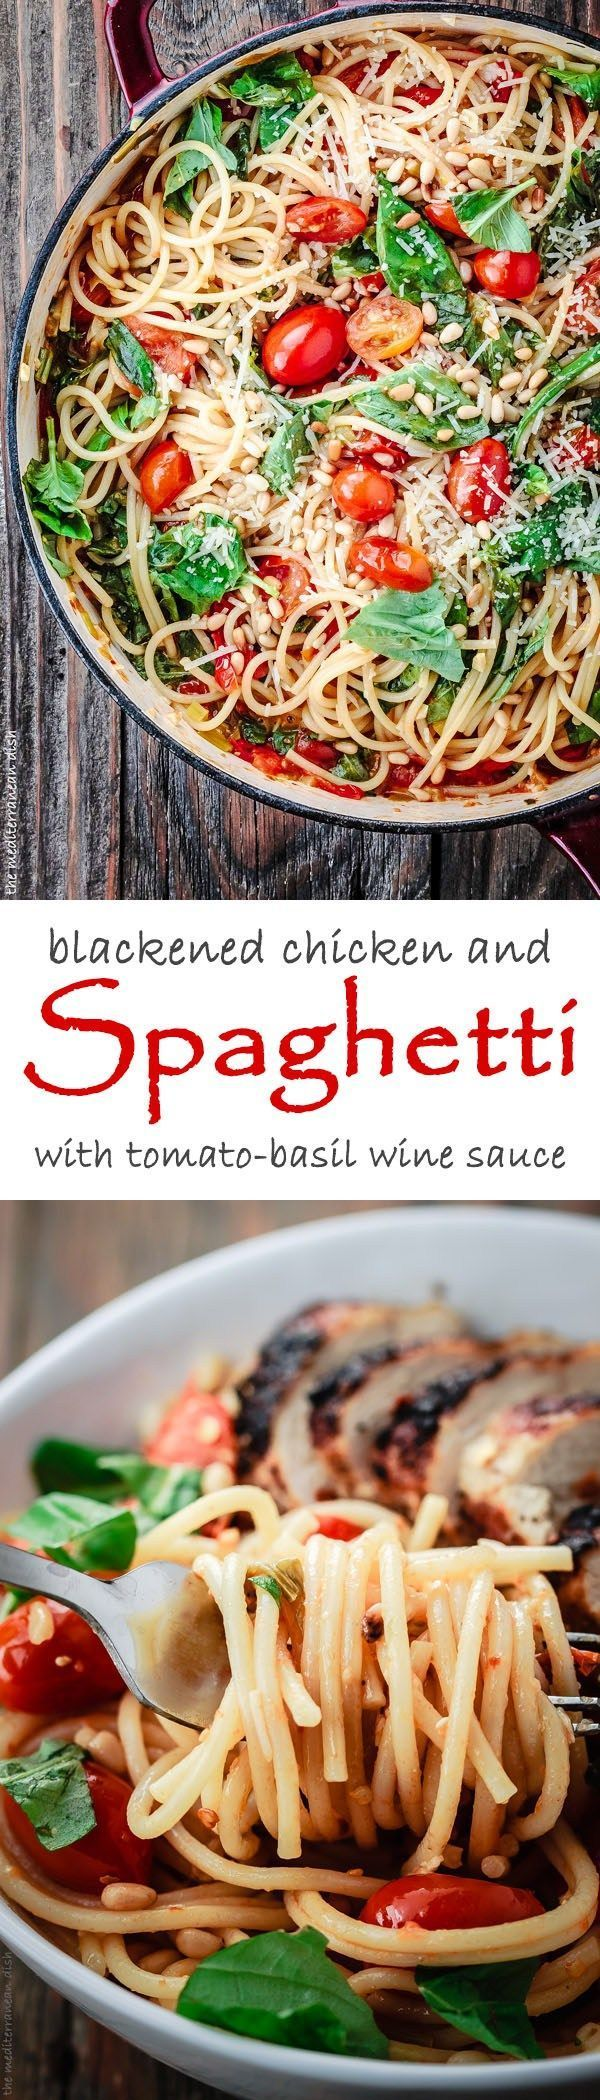 Blackened Chicken and Spaghetti Recipe with Tomato-Basil Wine Sauce. Try this perfect chicken and spaghetti dinner. Made with a light citrus wine sauce, fresh grape tomatoes and herbs. The perfect bite of comfort-by-carbs, but without the guilt!